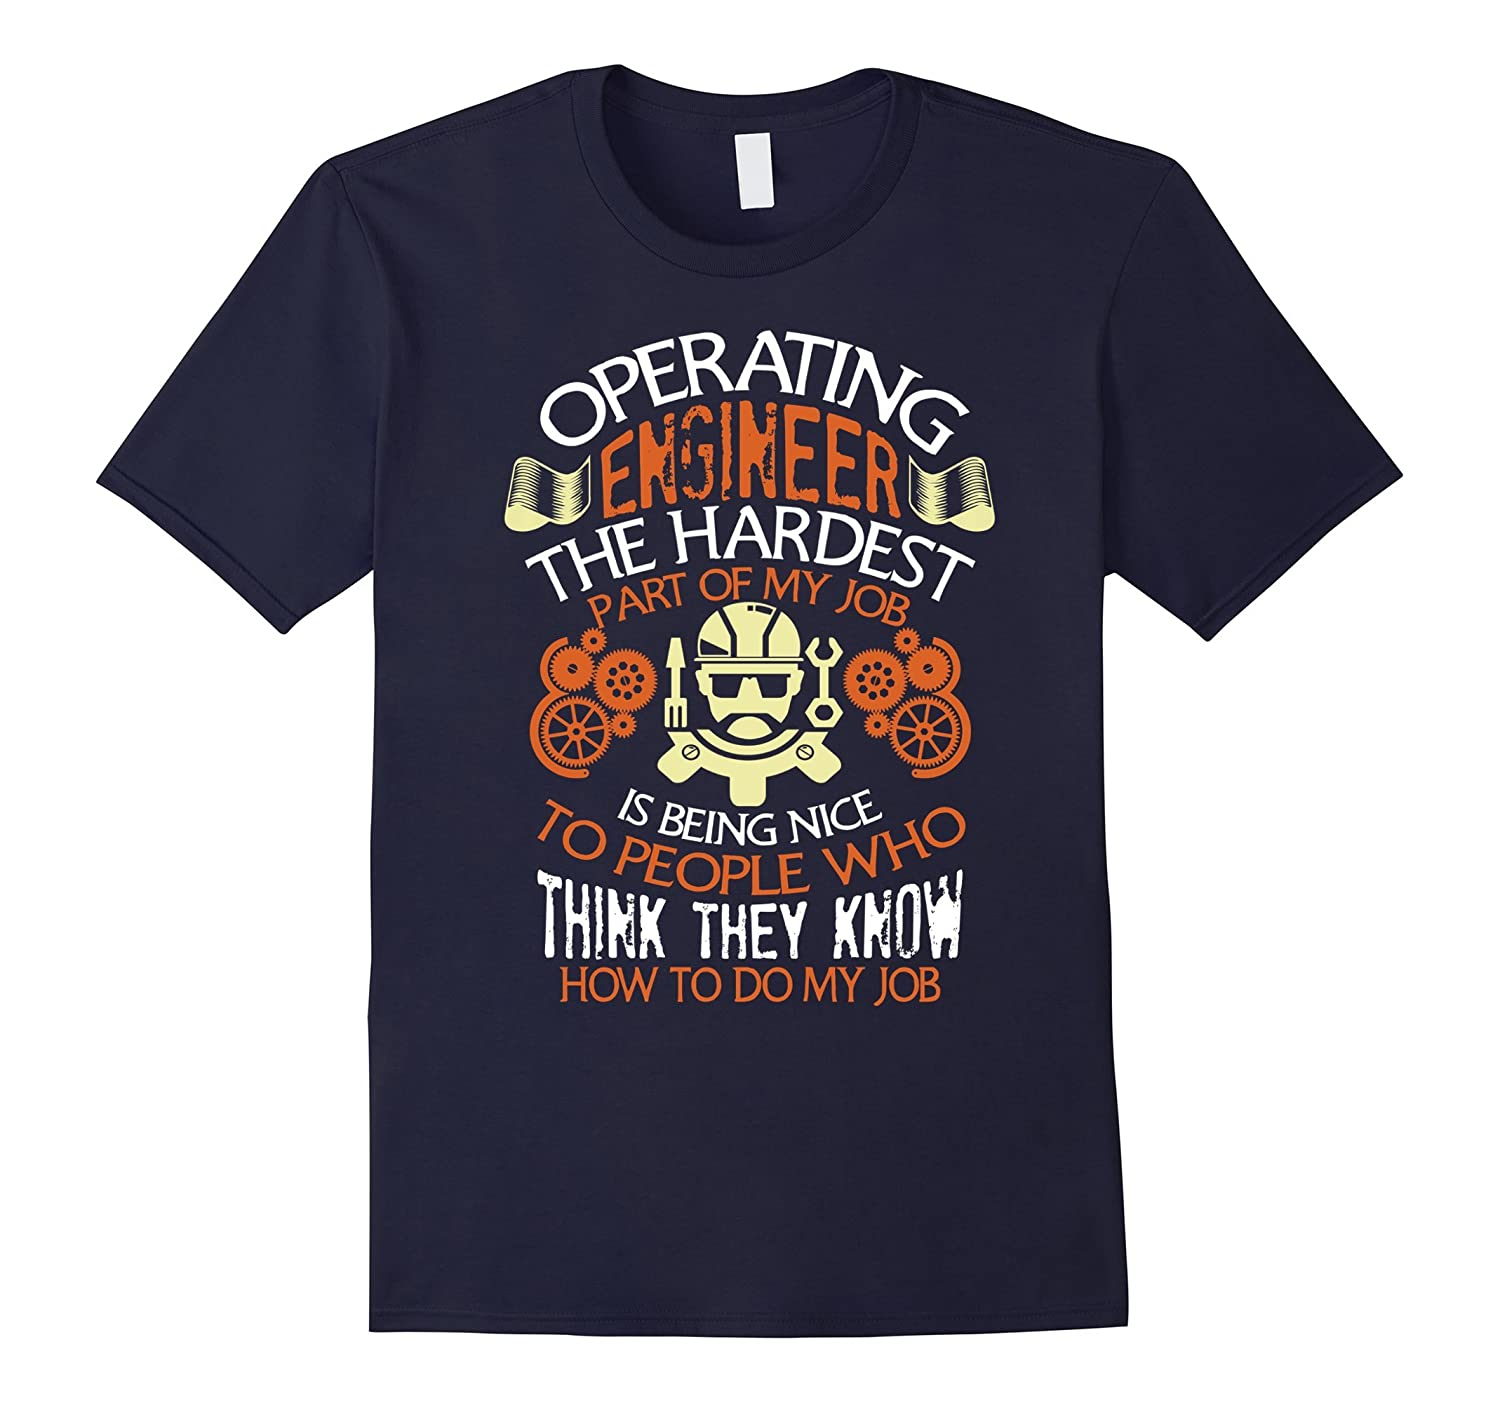 Operating Engineer T Shirt The Hardest Part Of My Job Shirt-Vaci